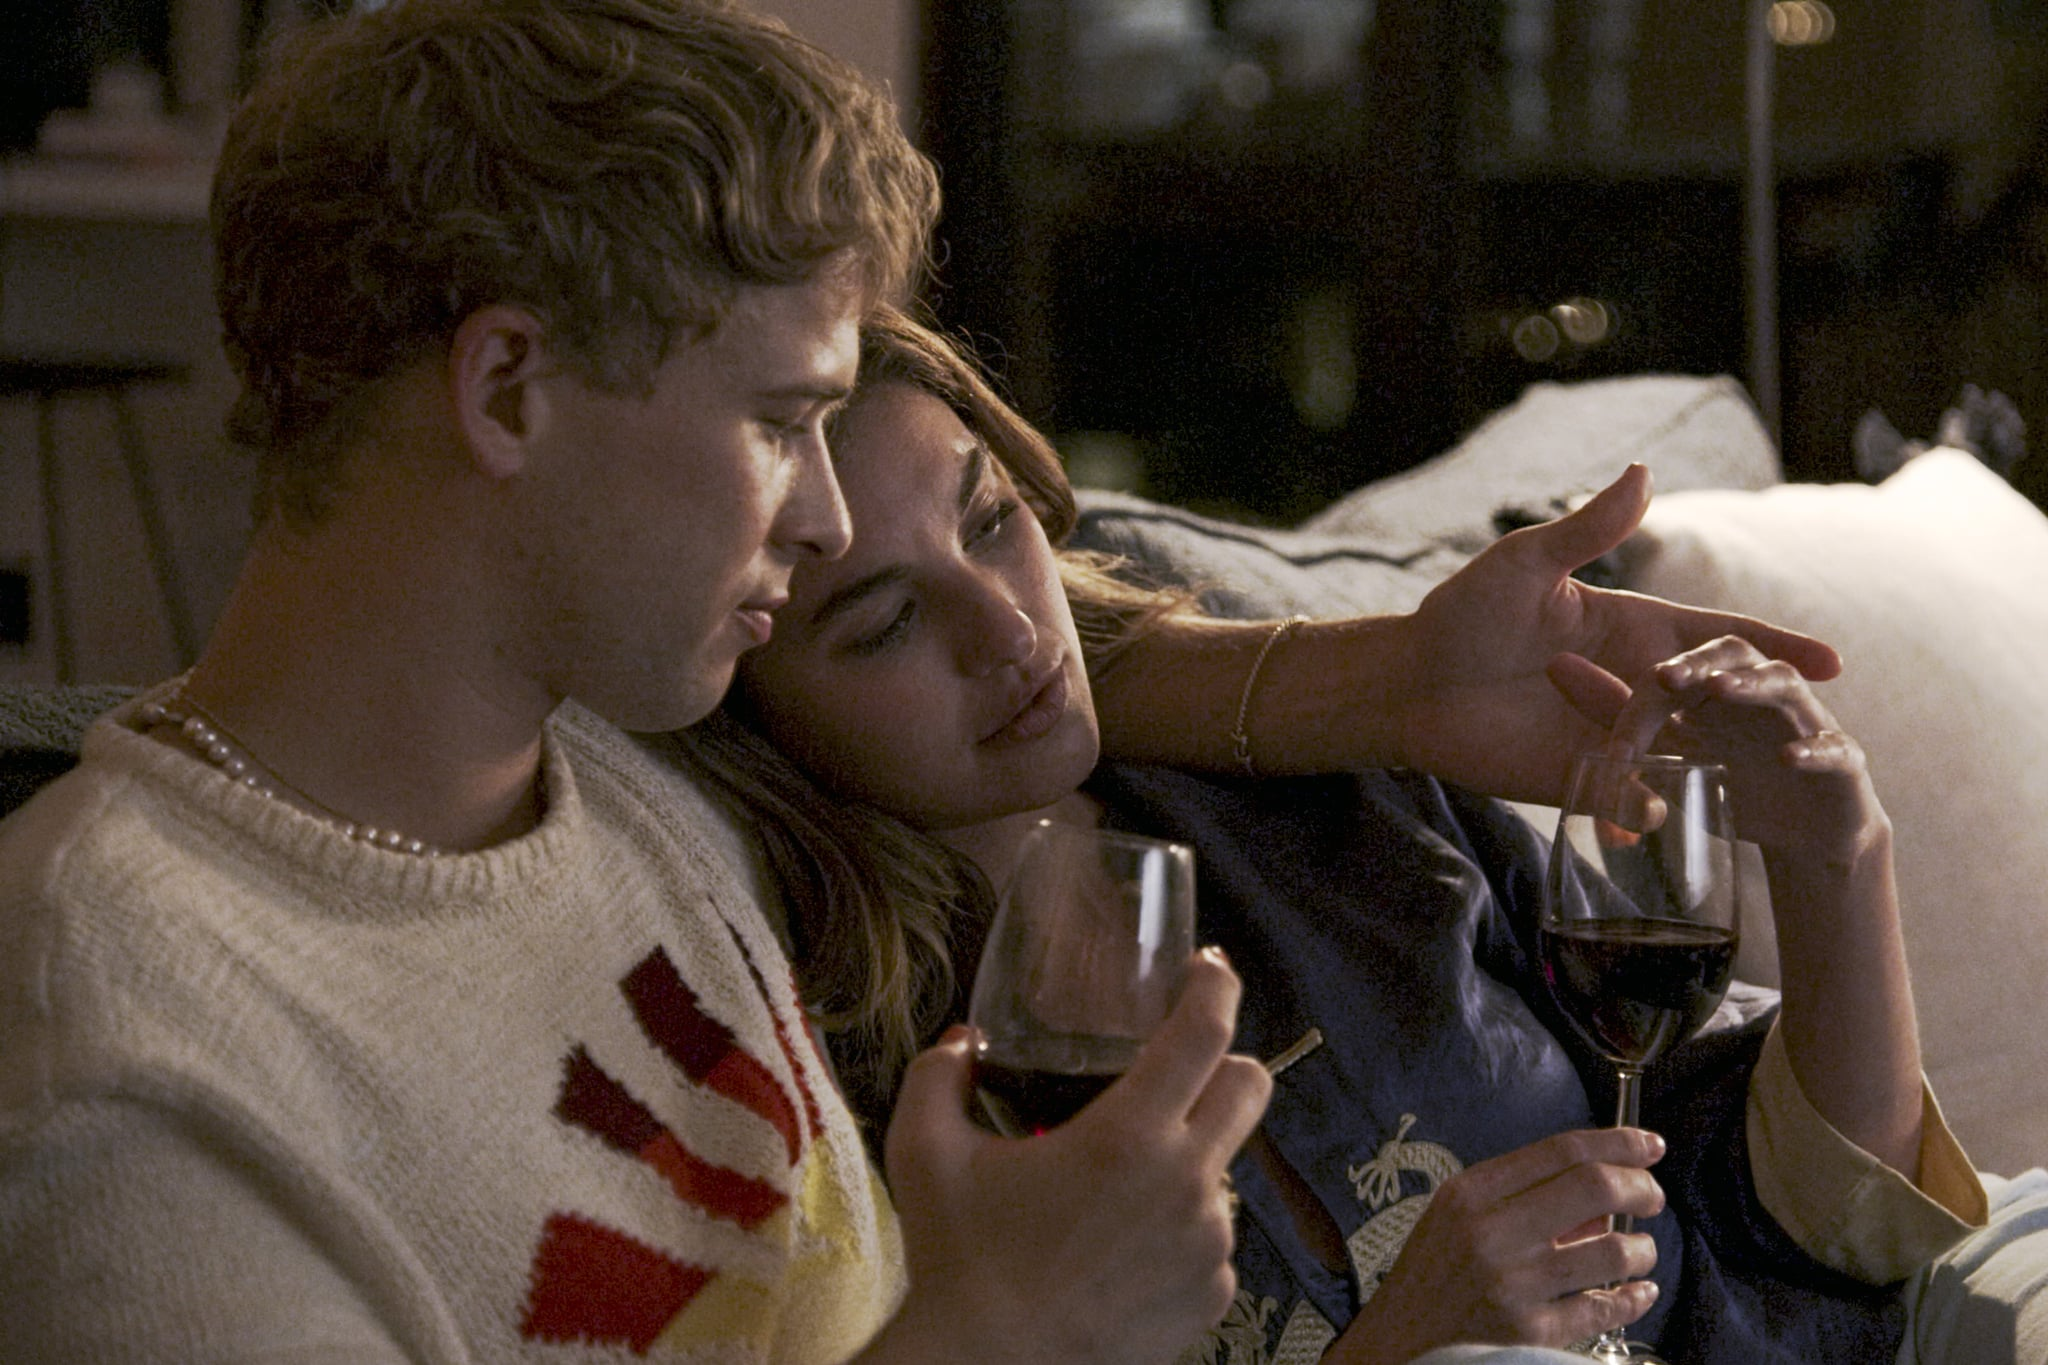 LOVE IN THE TIME OF CORONA - This four-part romantic comedy series is a funny and hopeful look at the search for love, sex and connection during this time of social distancing. Freeform's highly anticipated limited series